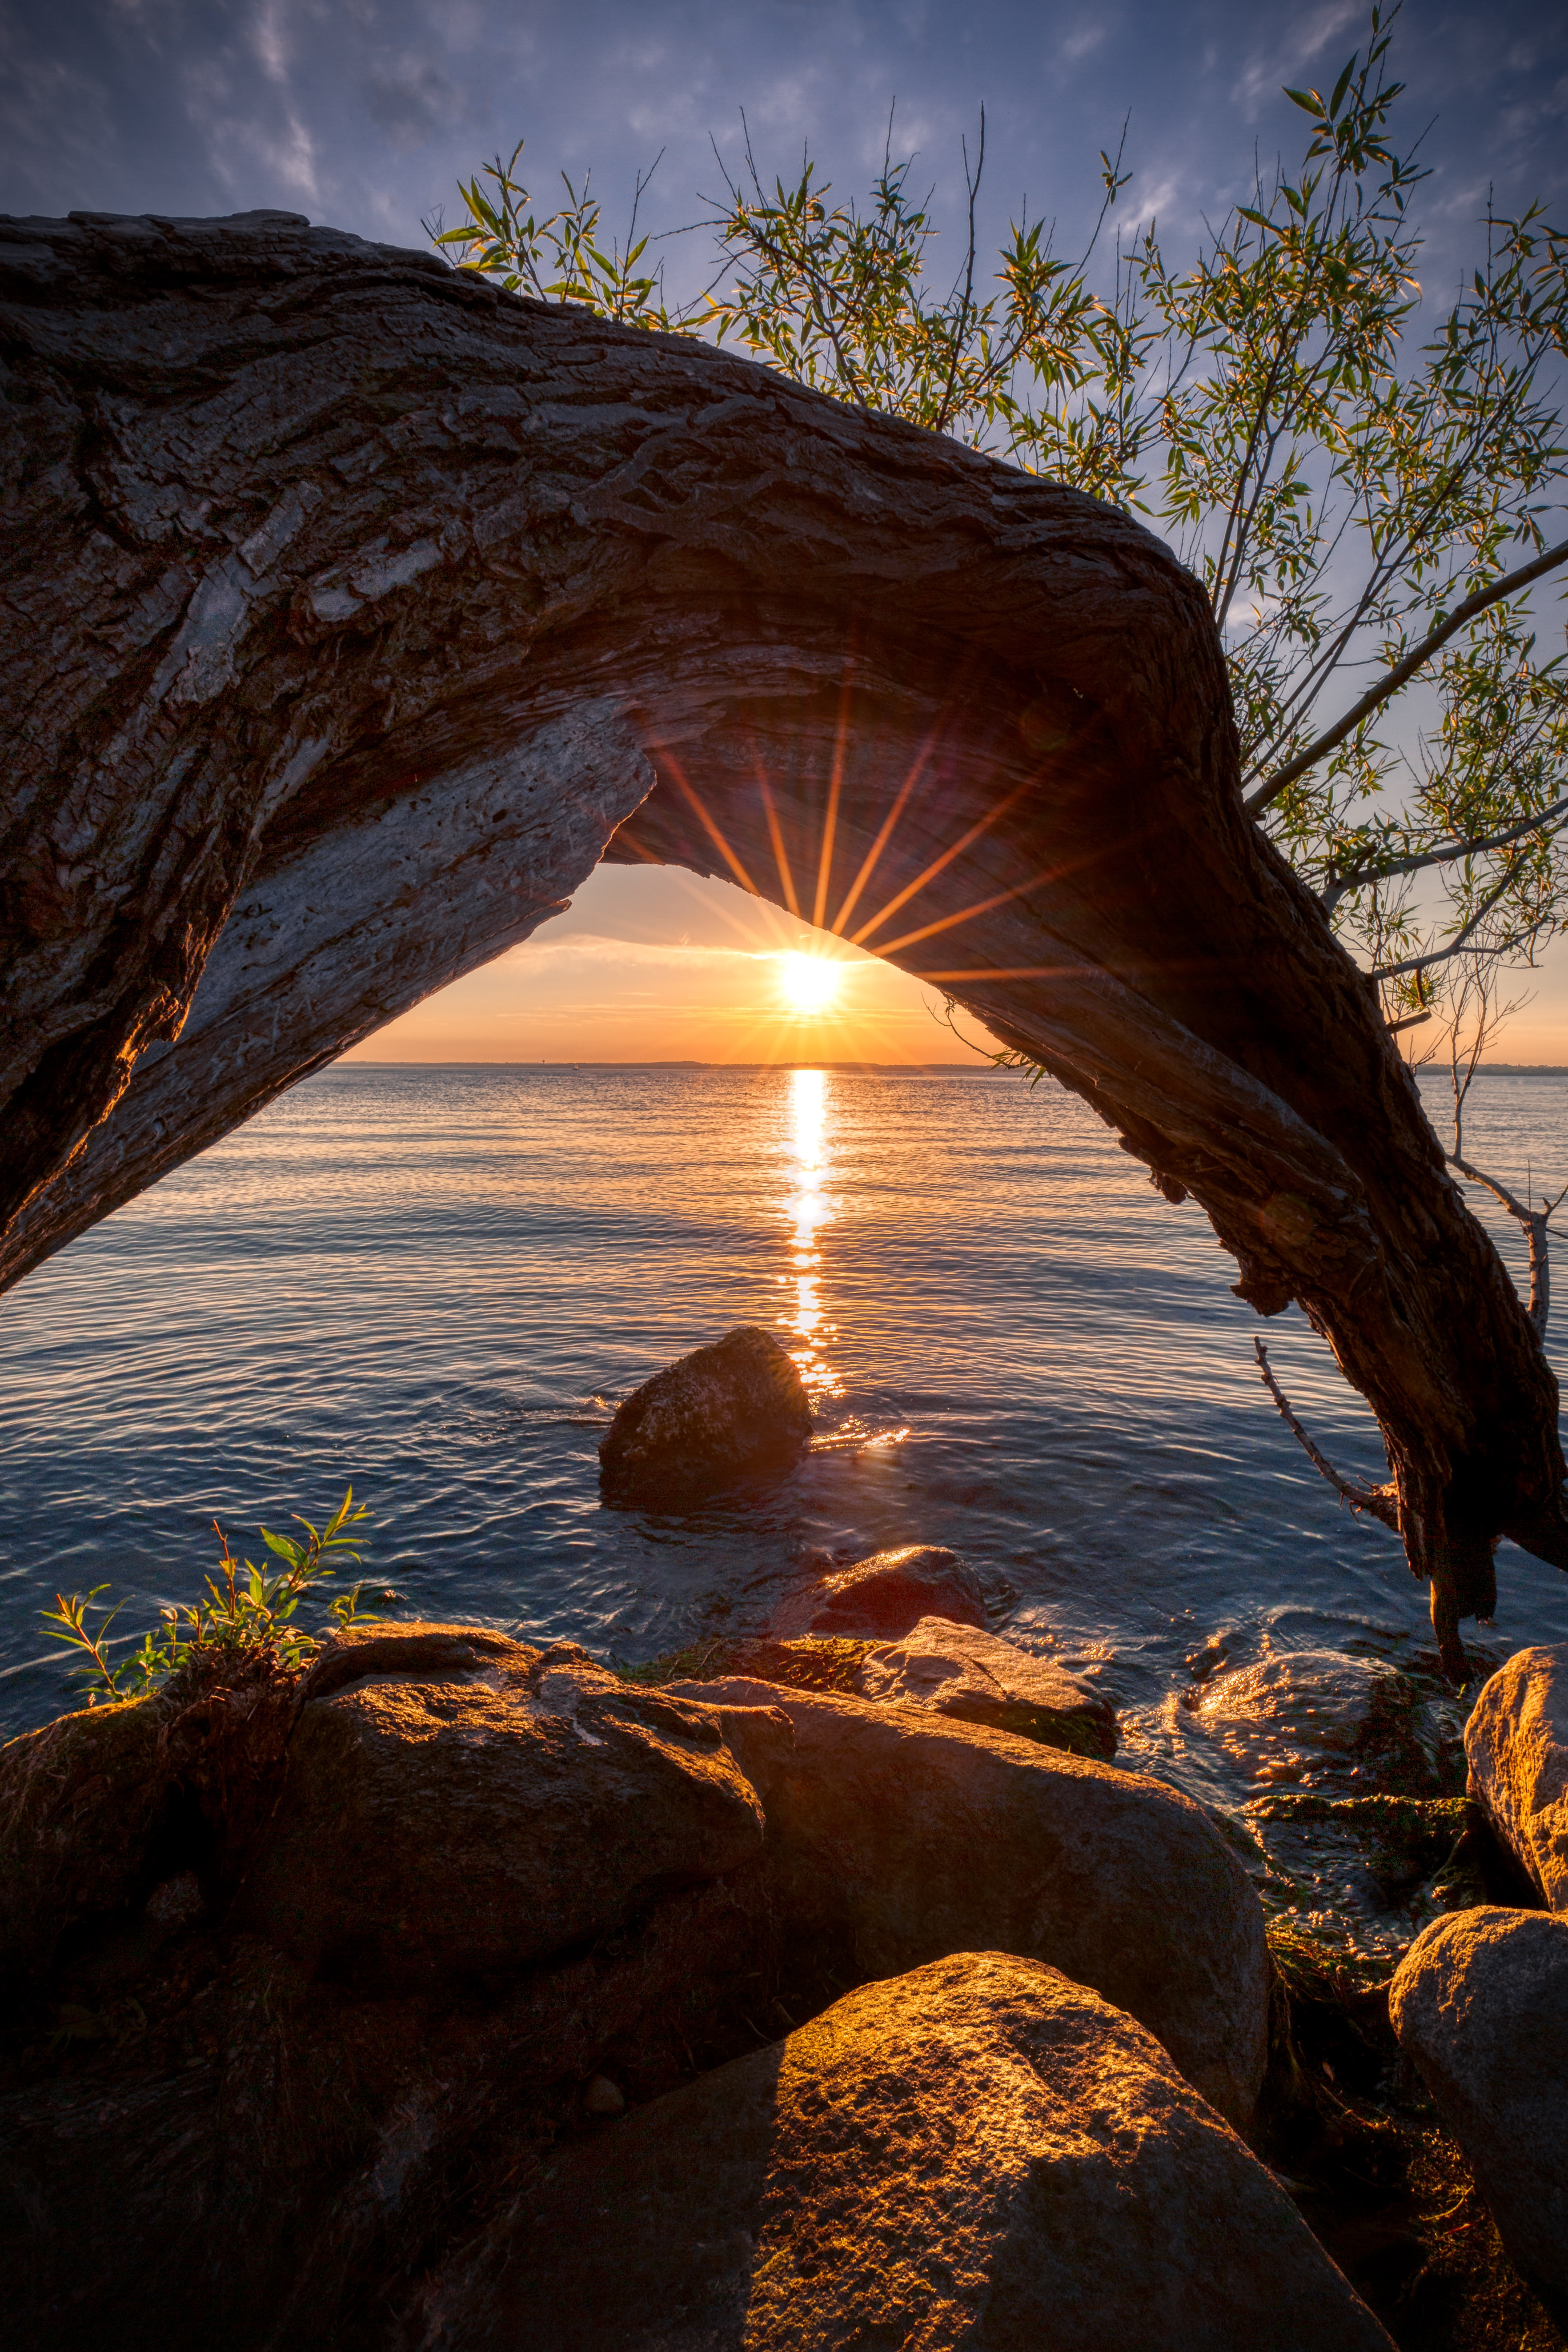 141955 download wallpaper Sunset, Nature, Sun, Lake, Wood, Beams, Rays, Tree screensavers and pictures for free